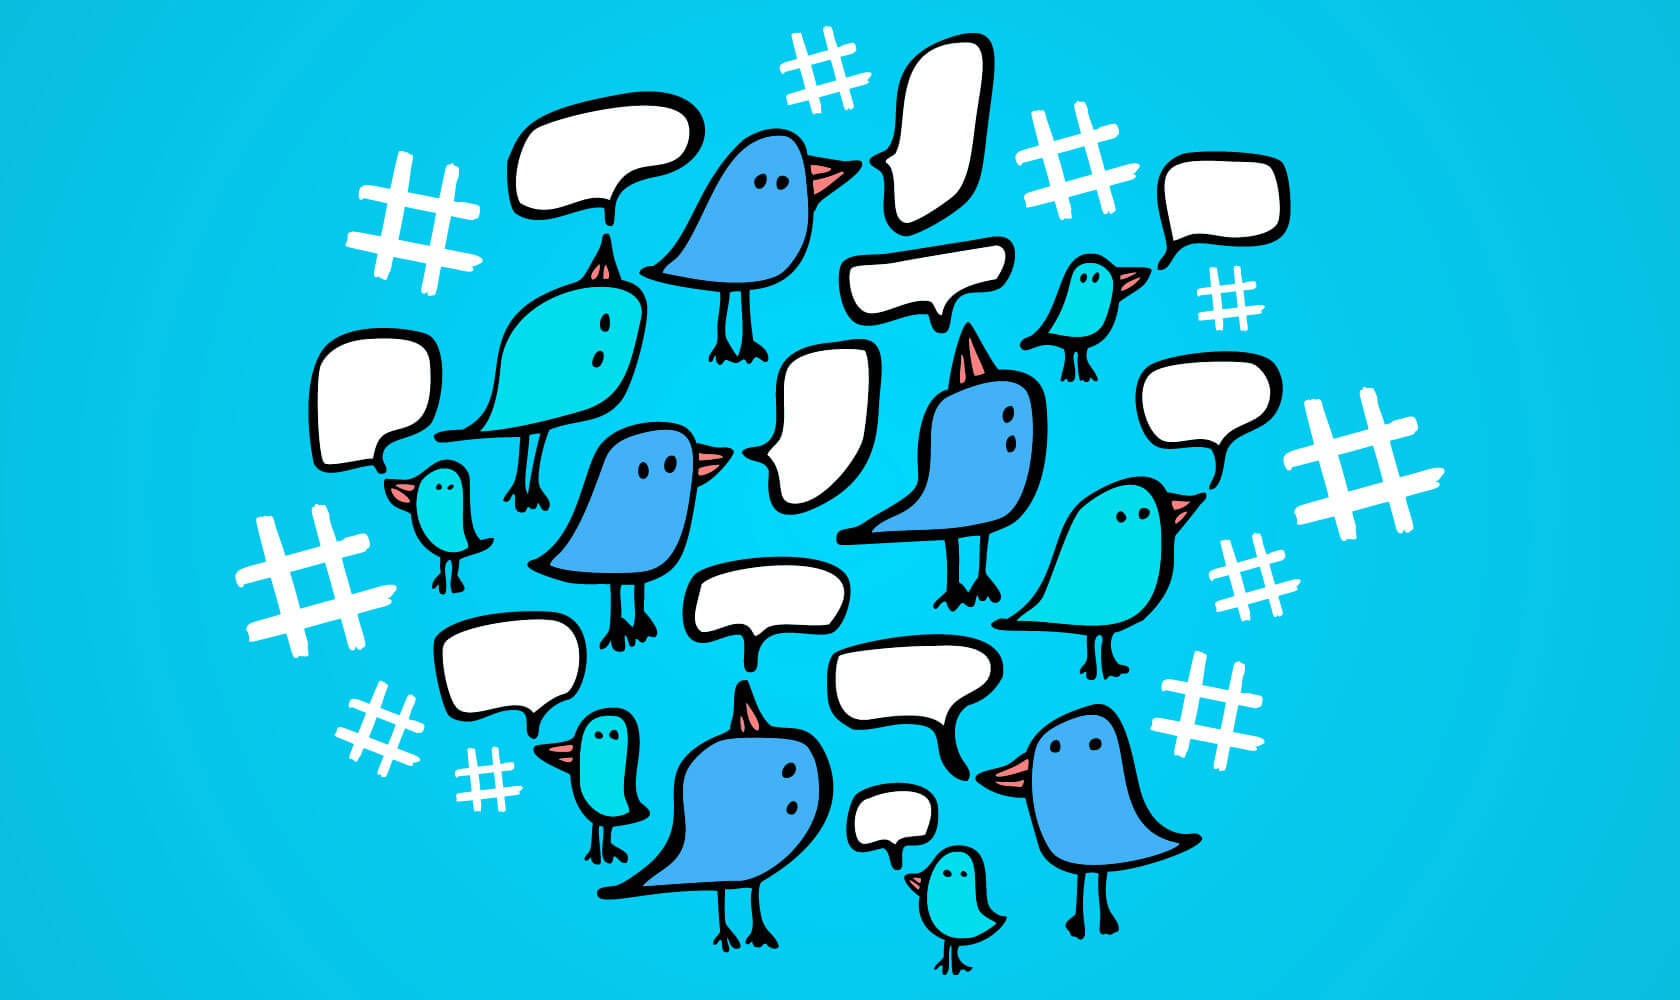 Locked accounts will no longer contribute towards your Twitter follower count